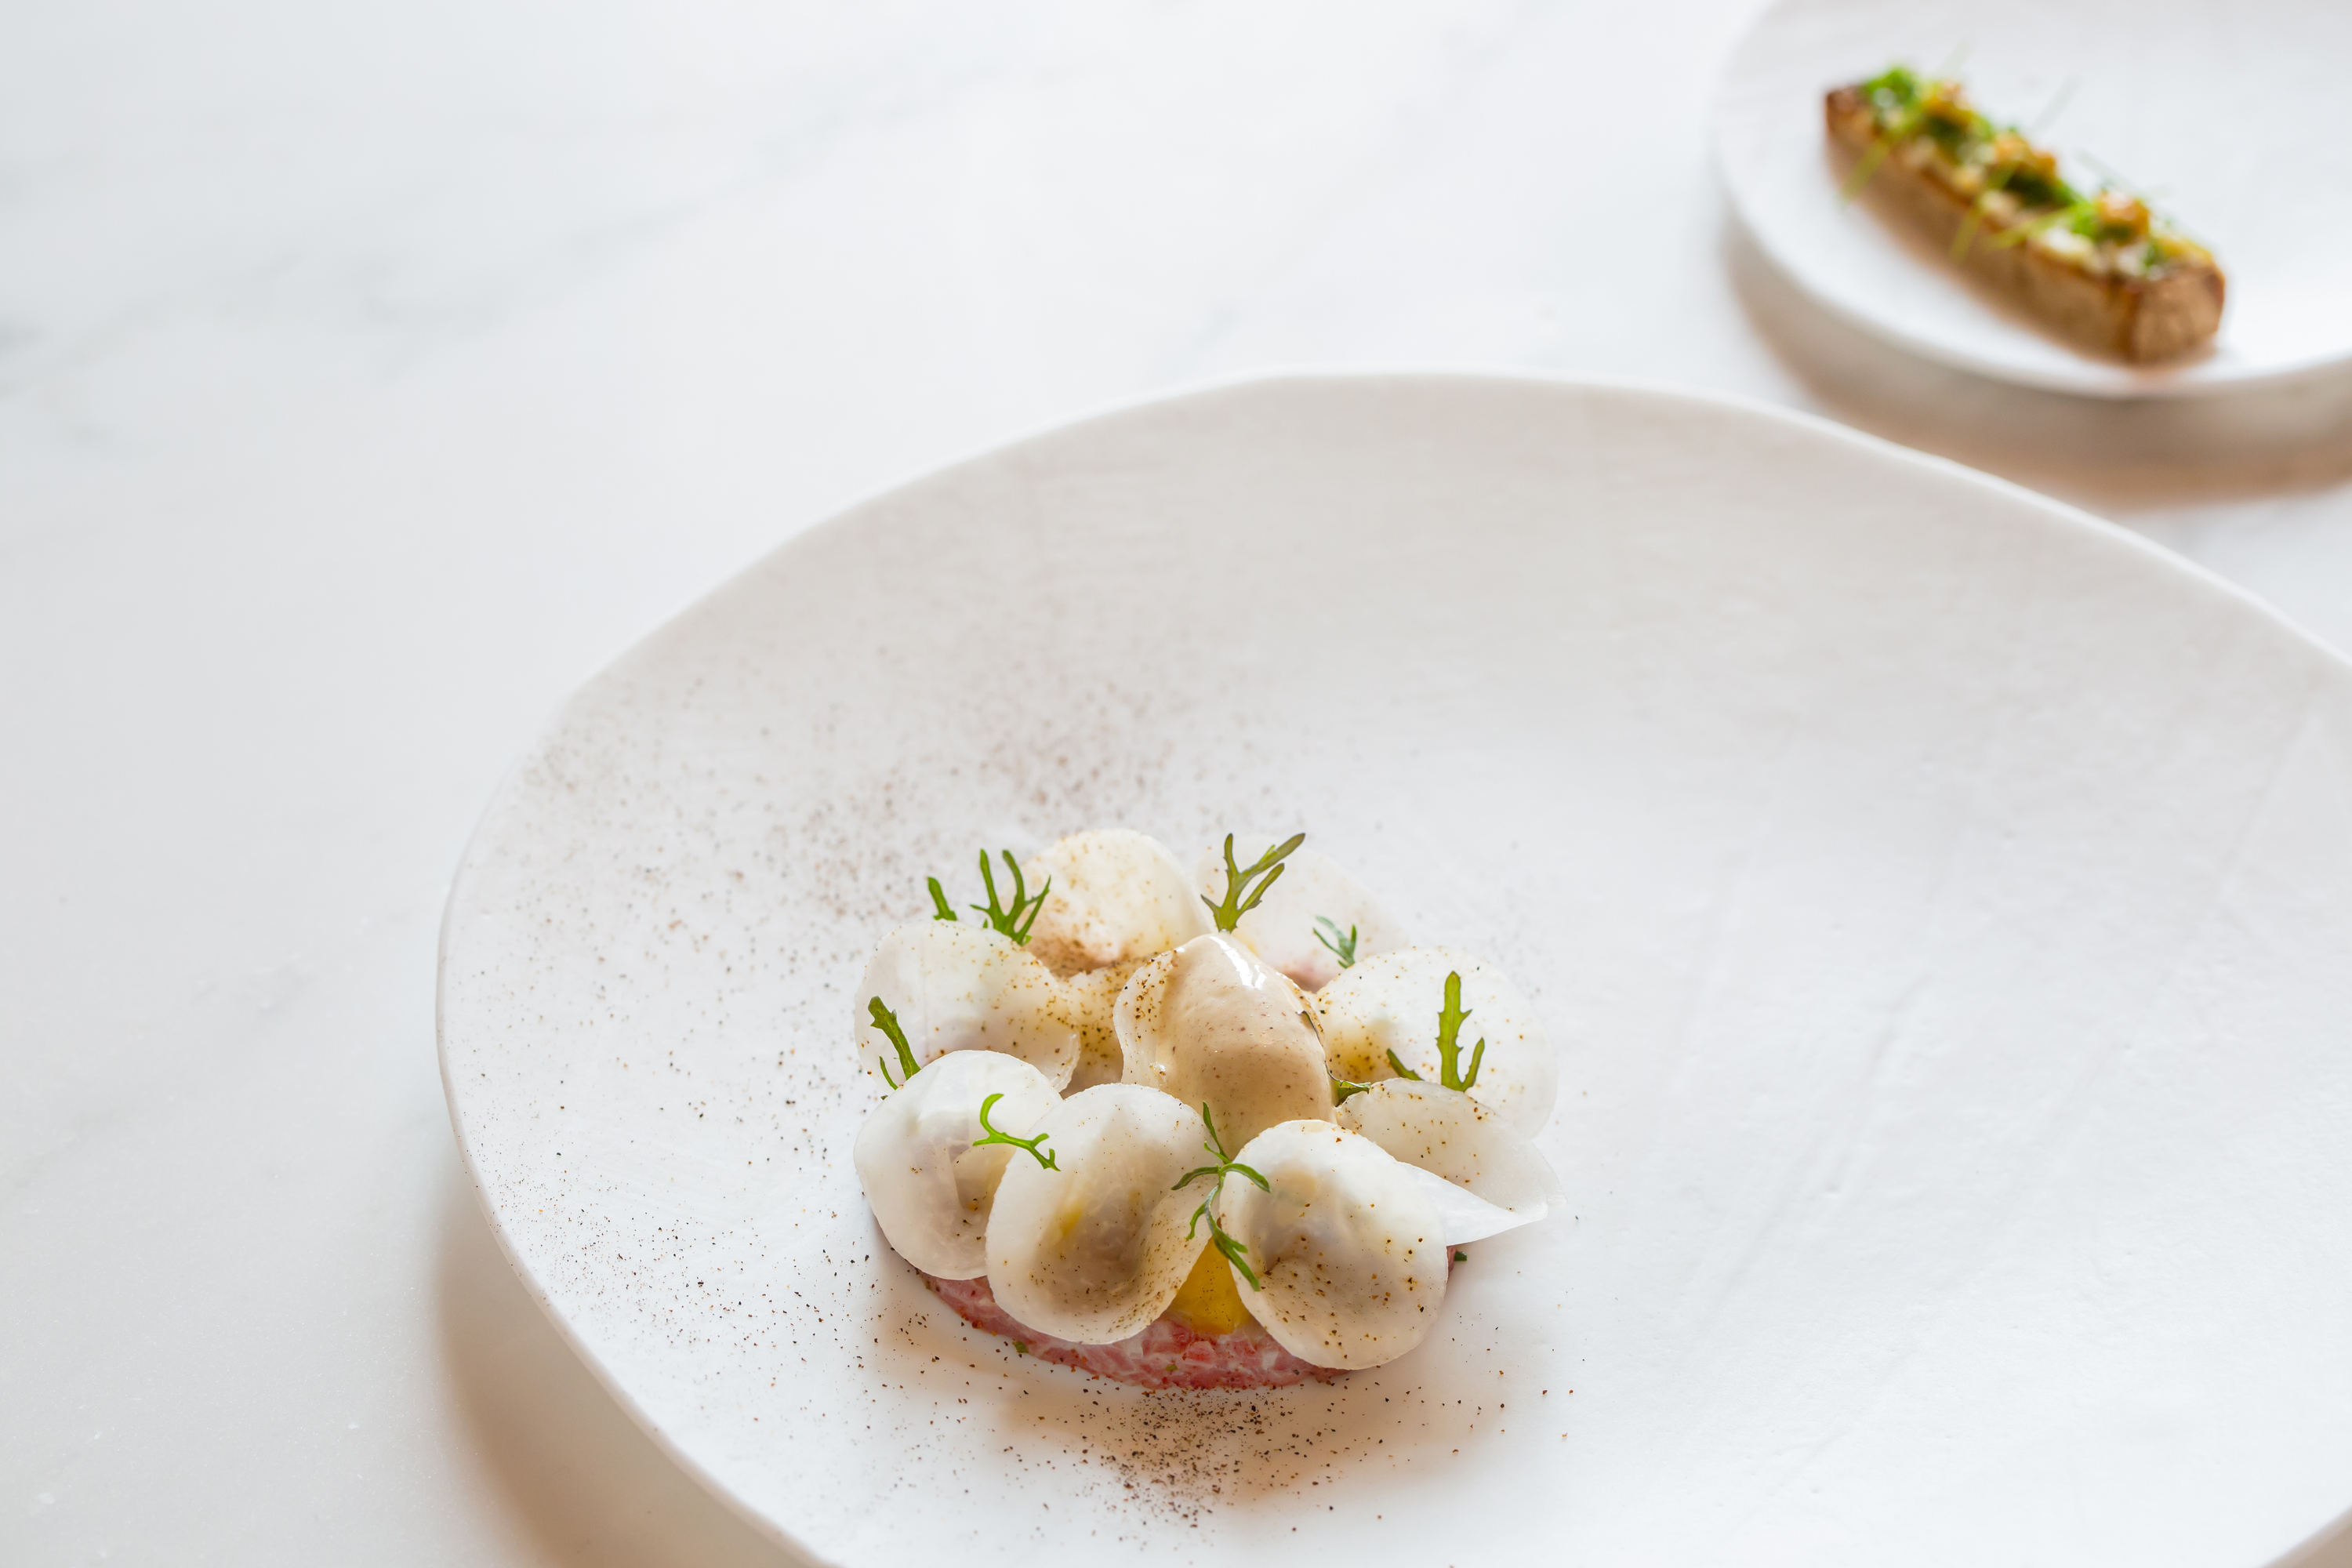 Michelin-starred restaurants in Singapore